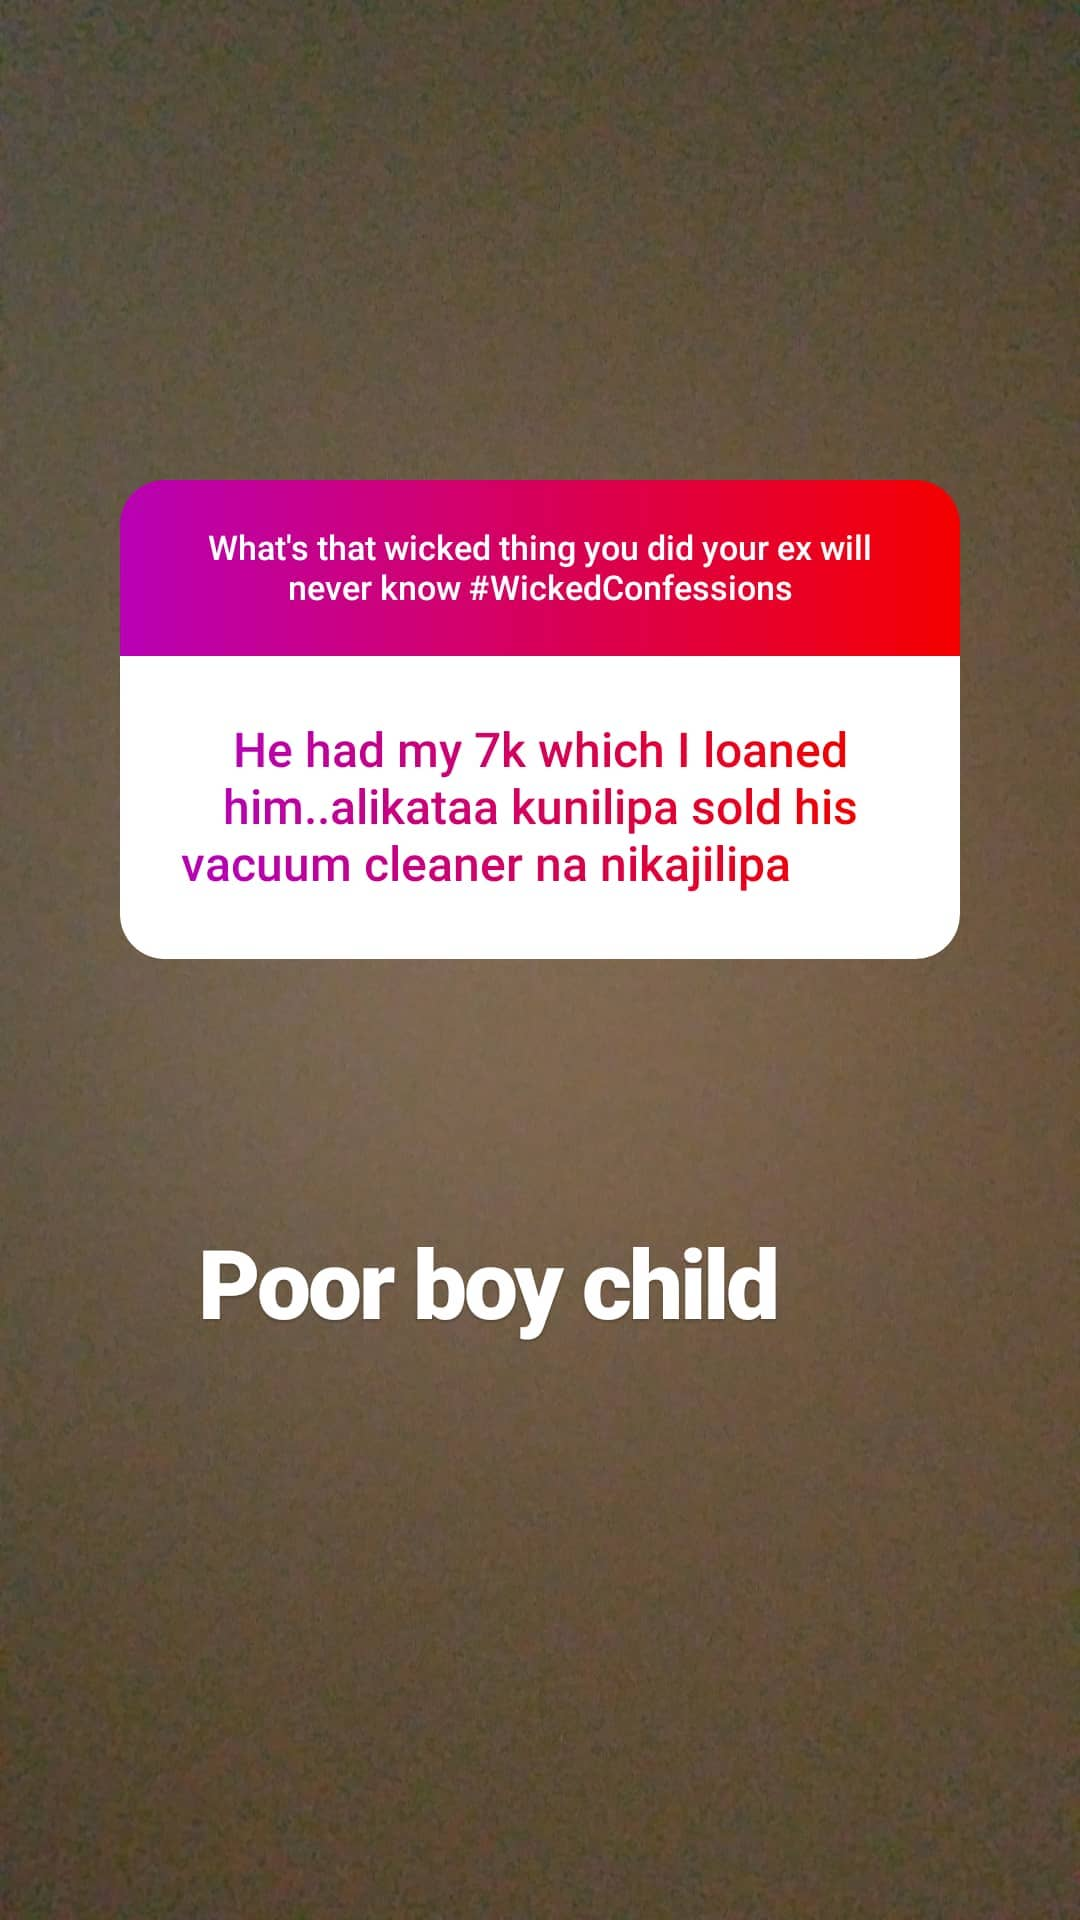 43817980 2142935215927057 2863392062440829268 n - 'I smashed his brother, cousin and father,' Wicked things Kenyans hid from their exes